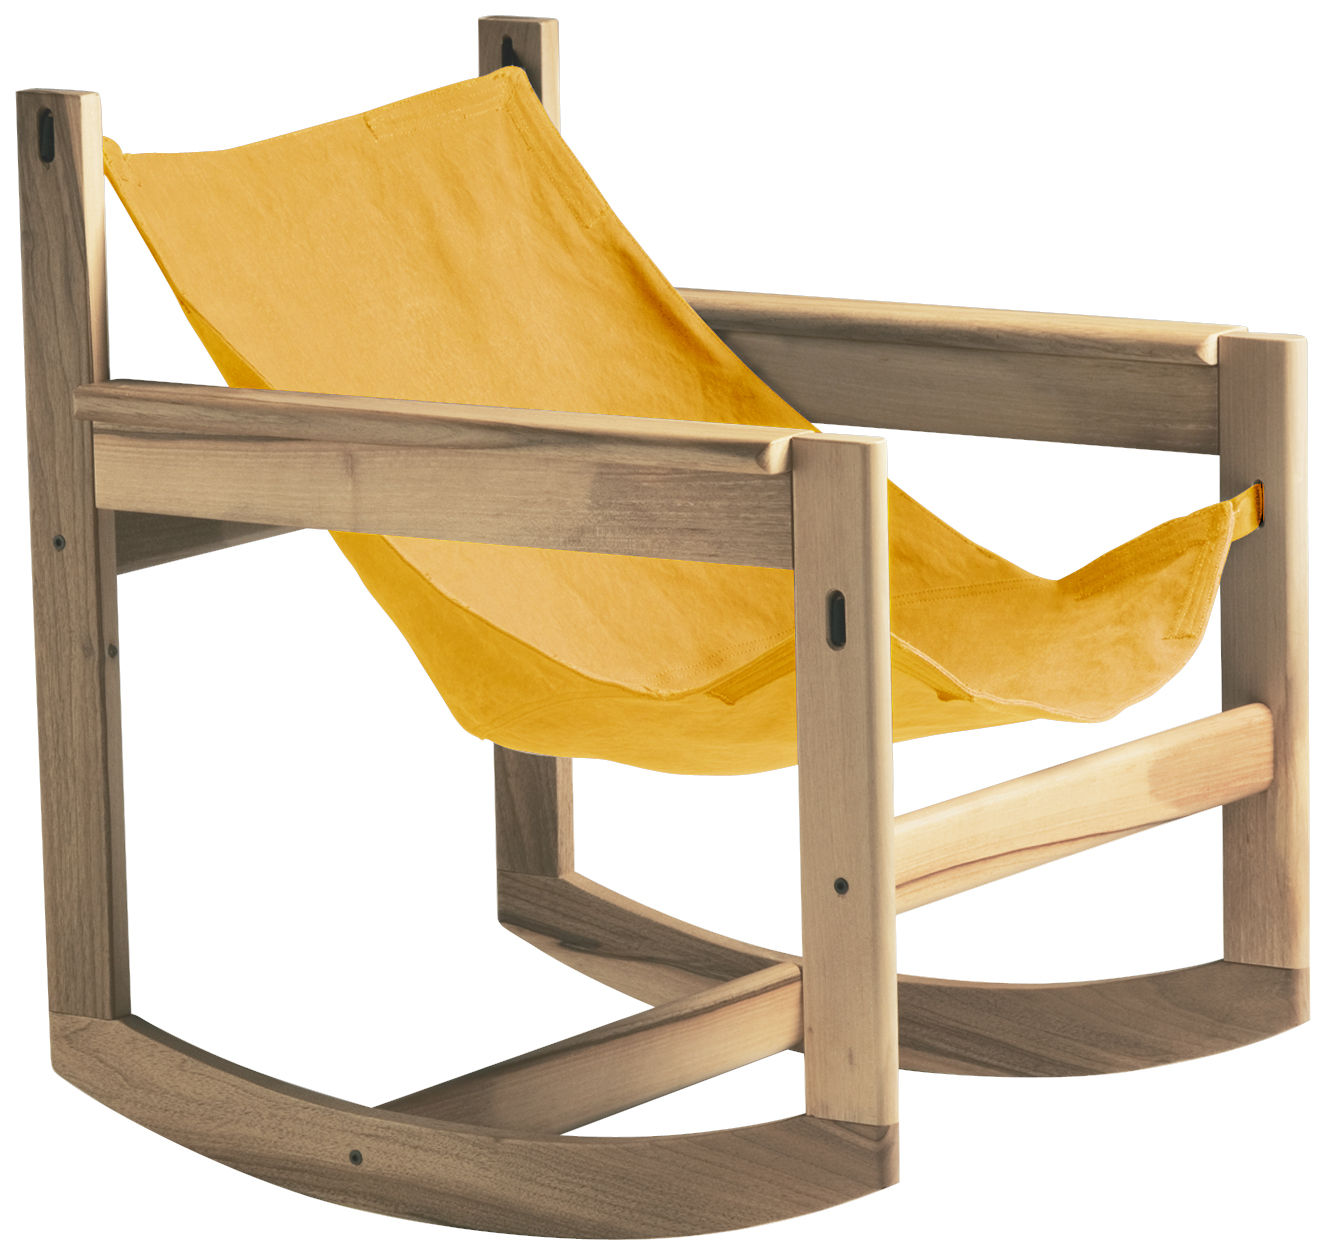 Furniture - Armchairs - Pelicano Rocking chair - Rocking chair by Objekto - Oak structure / Gold cover - Cotton, Oak